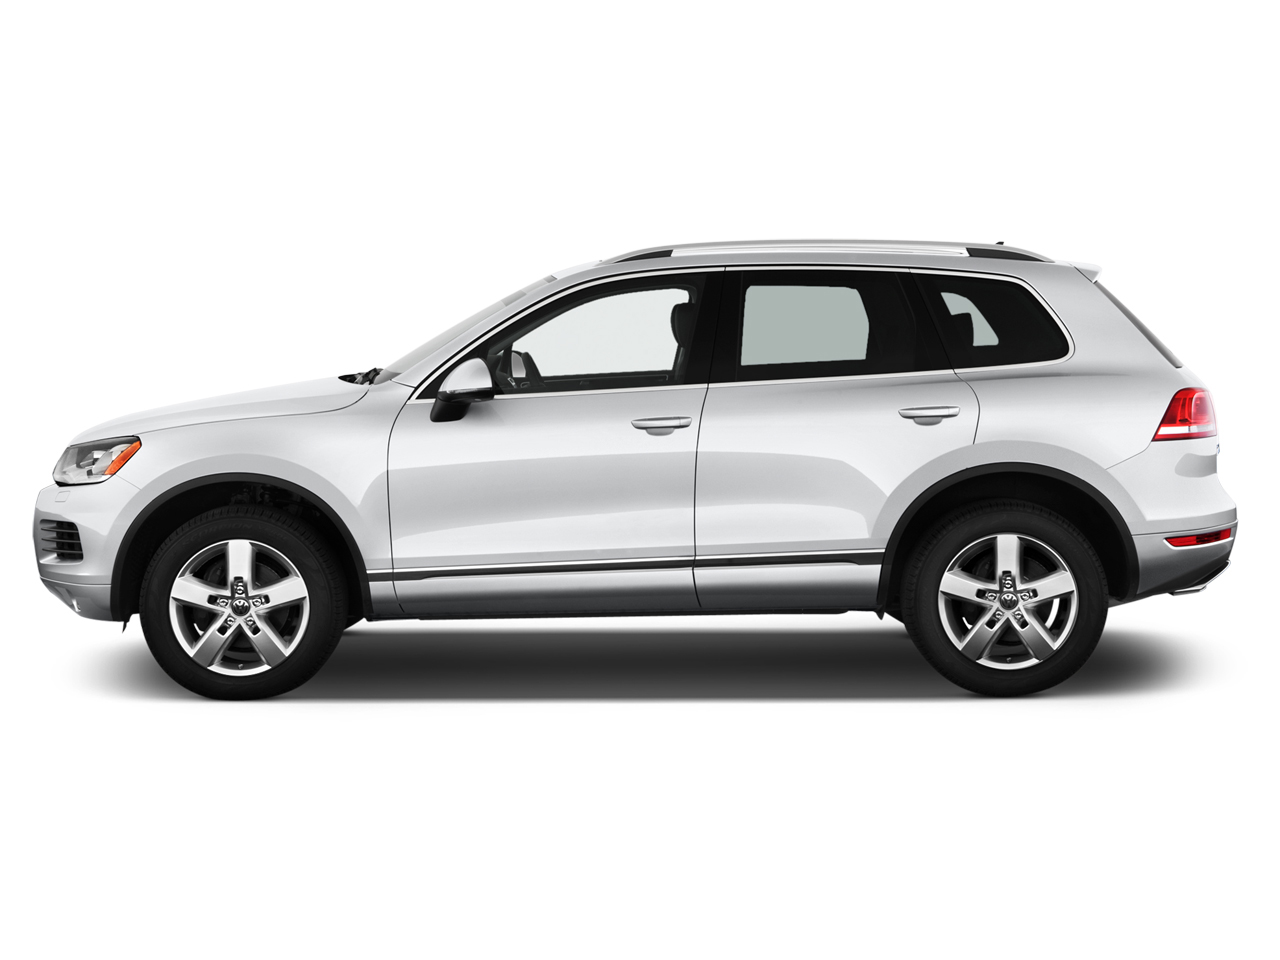 2012 volkswagen touareg vw review ratings specs prices and photos the car connection. Black Bedroom Furniture Sets. Home Design Ideas